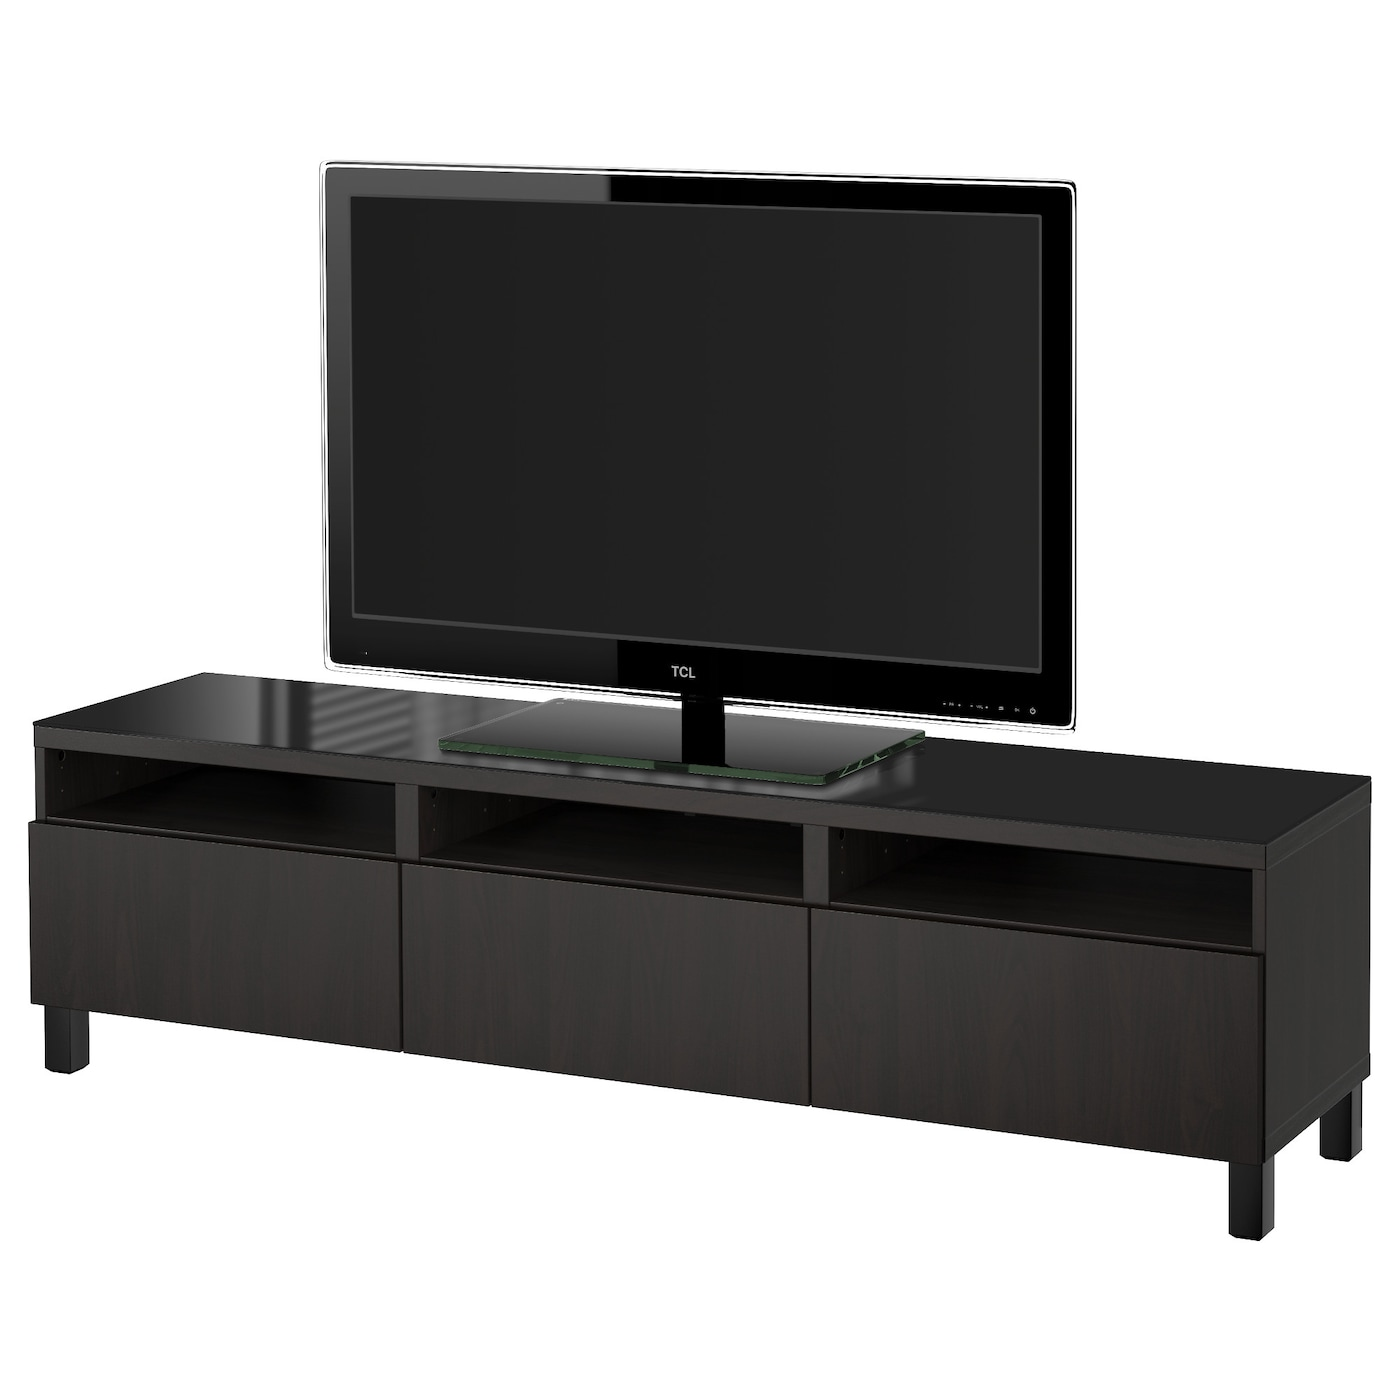 Tv tables tv benches ikea - Mueble tv hemnes ...